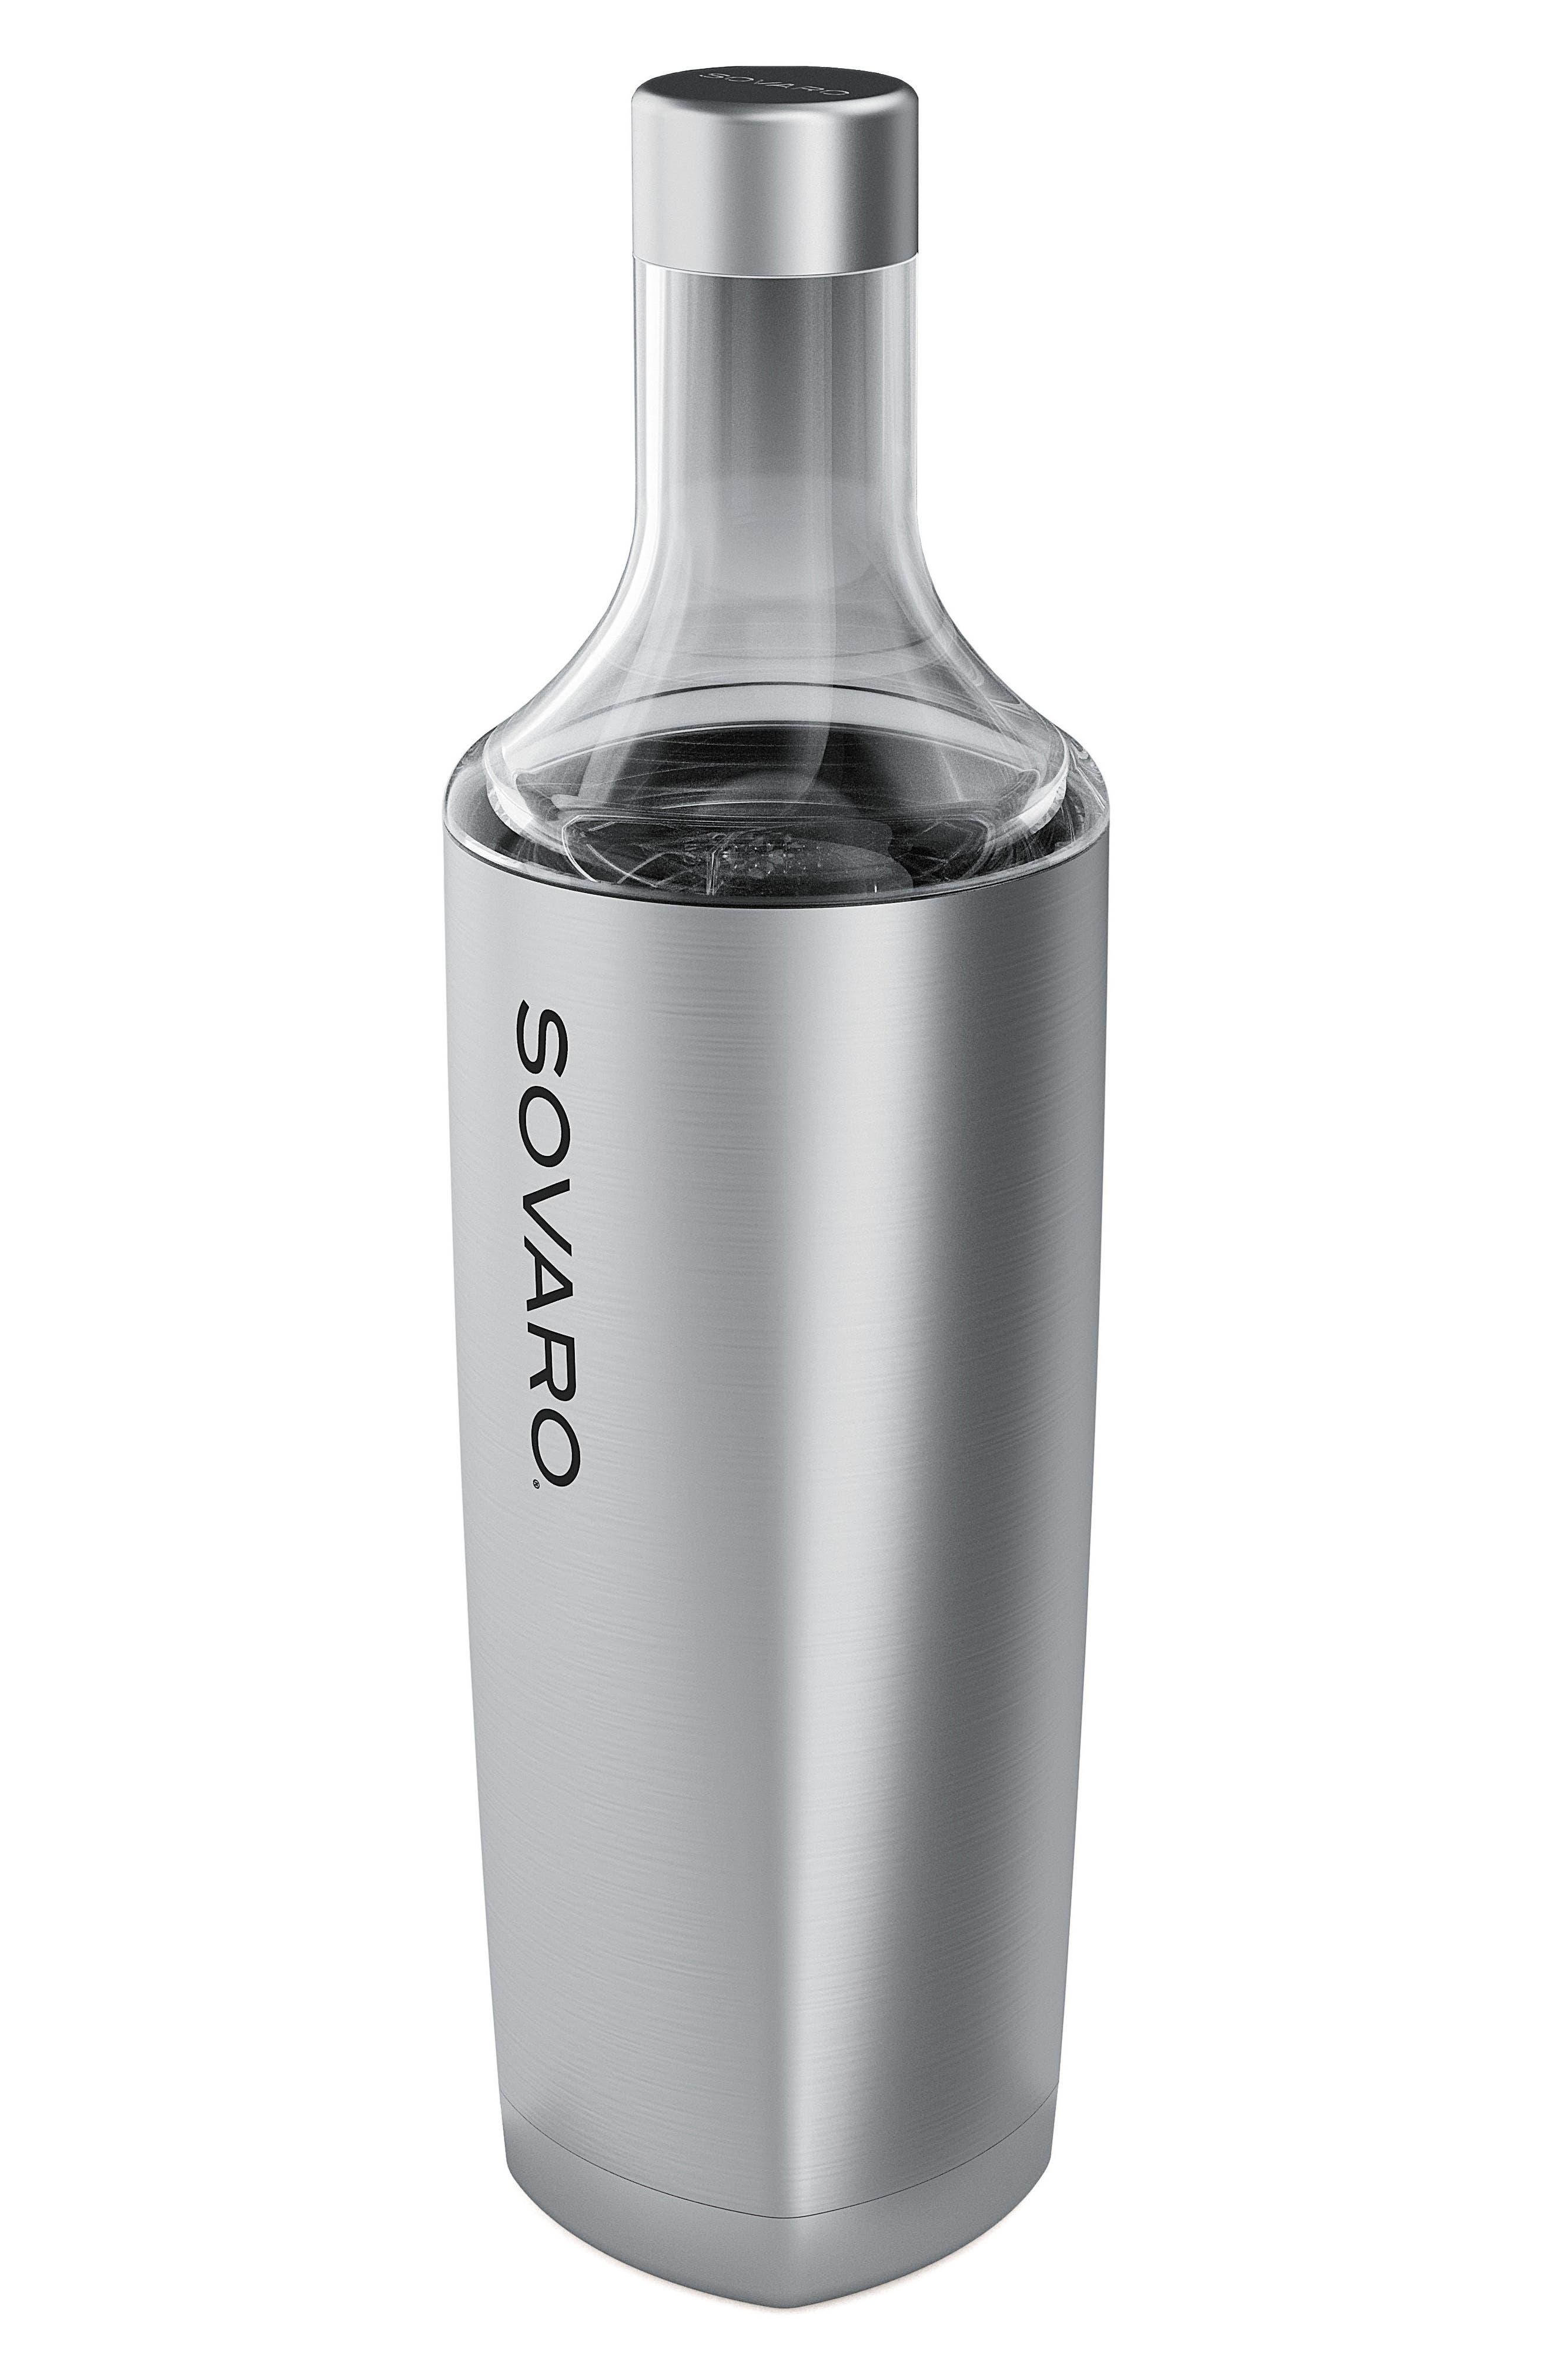 Sovaro 25-Ounce Insulated Beverage Bottle